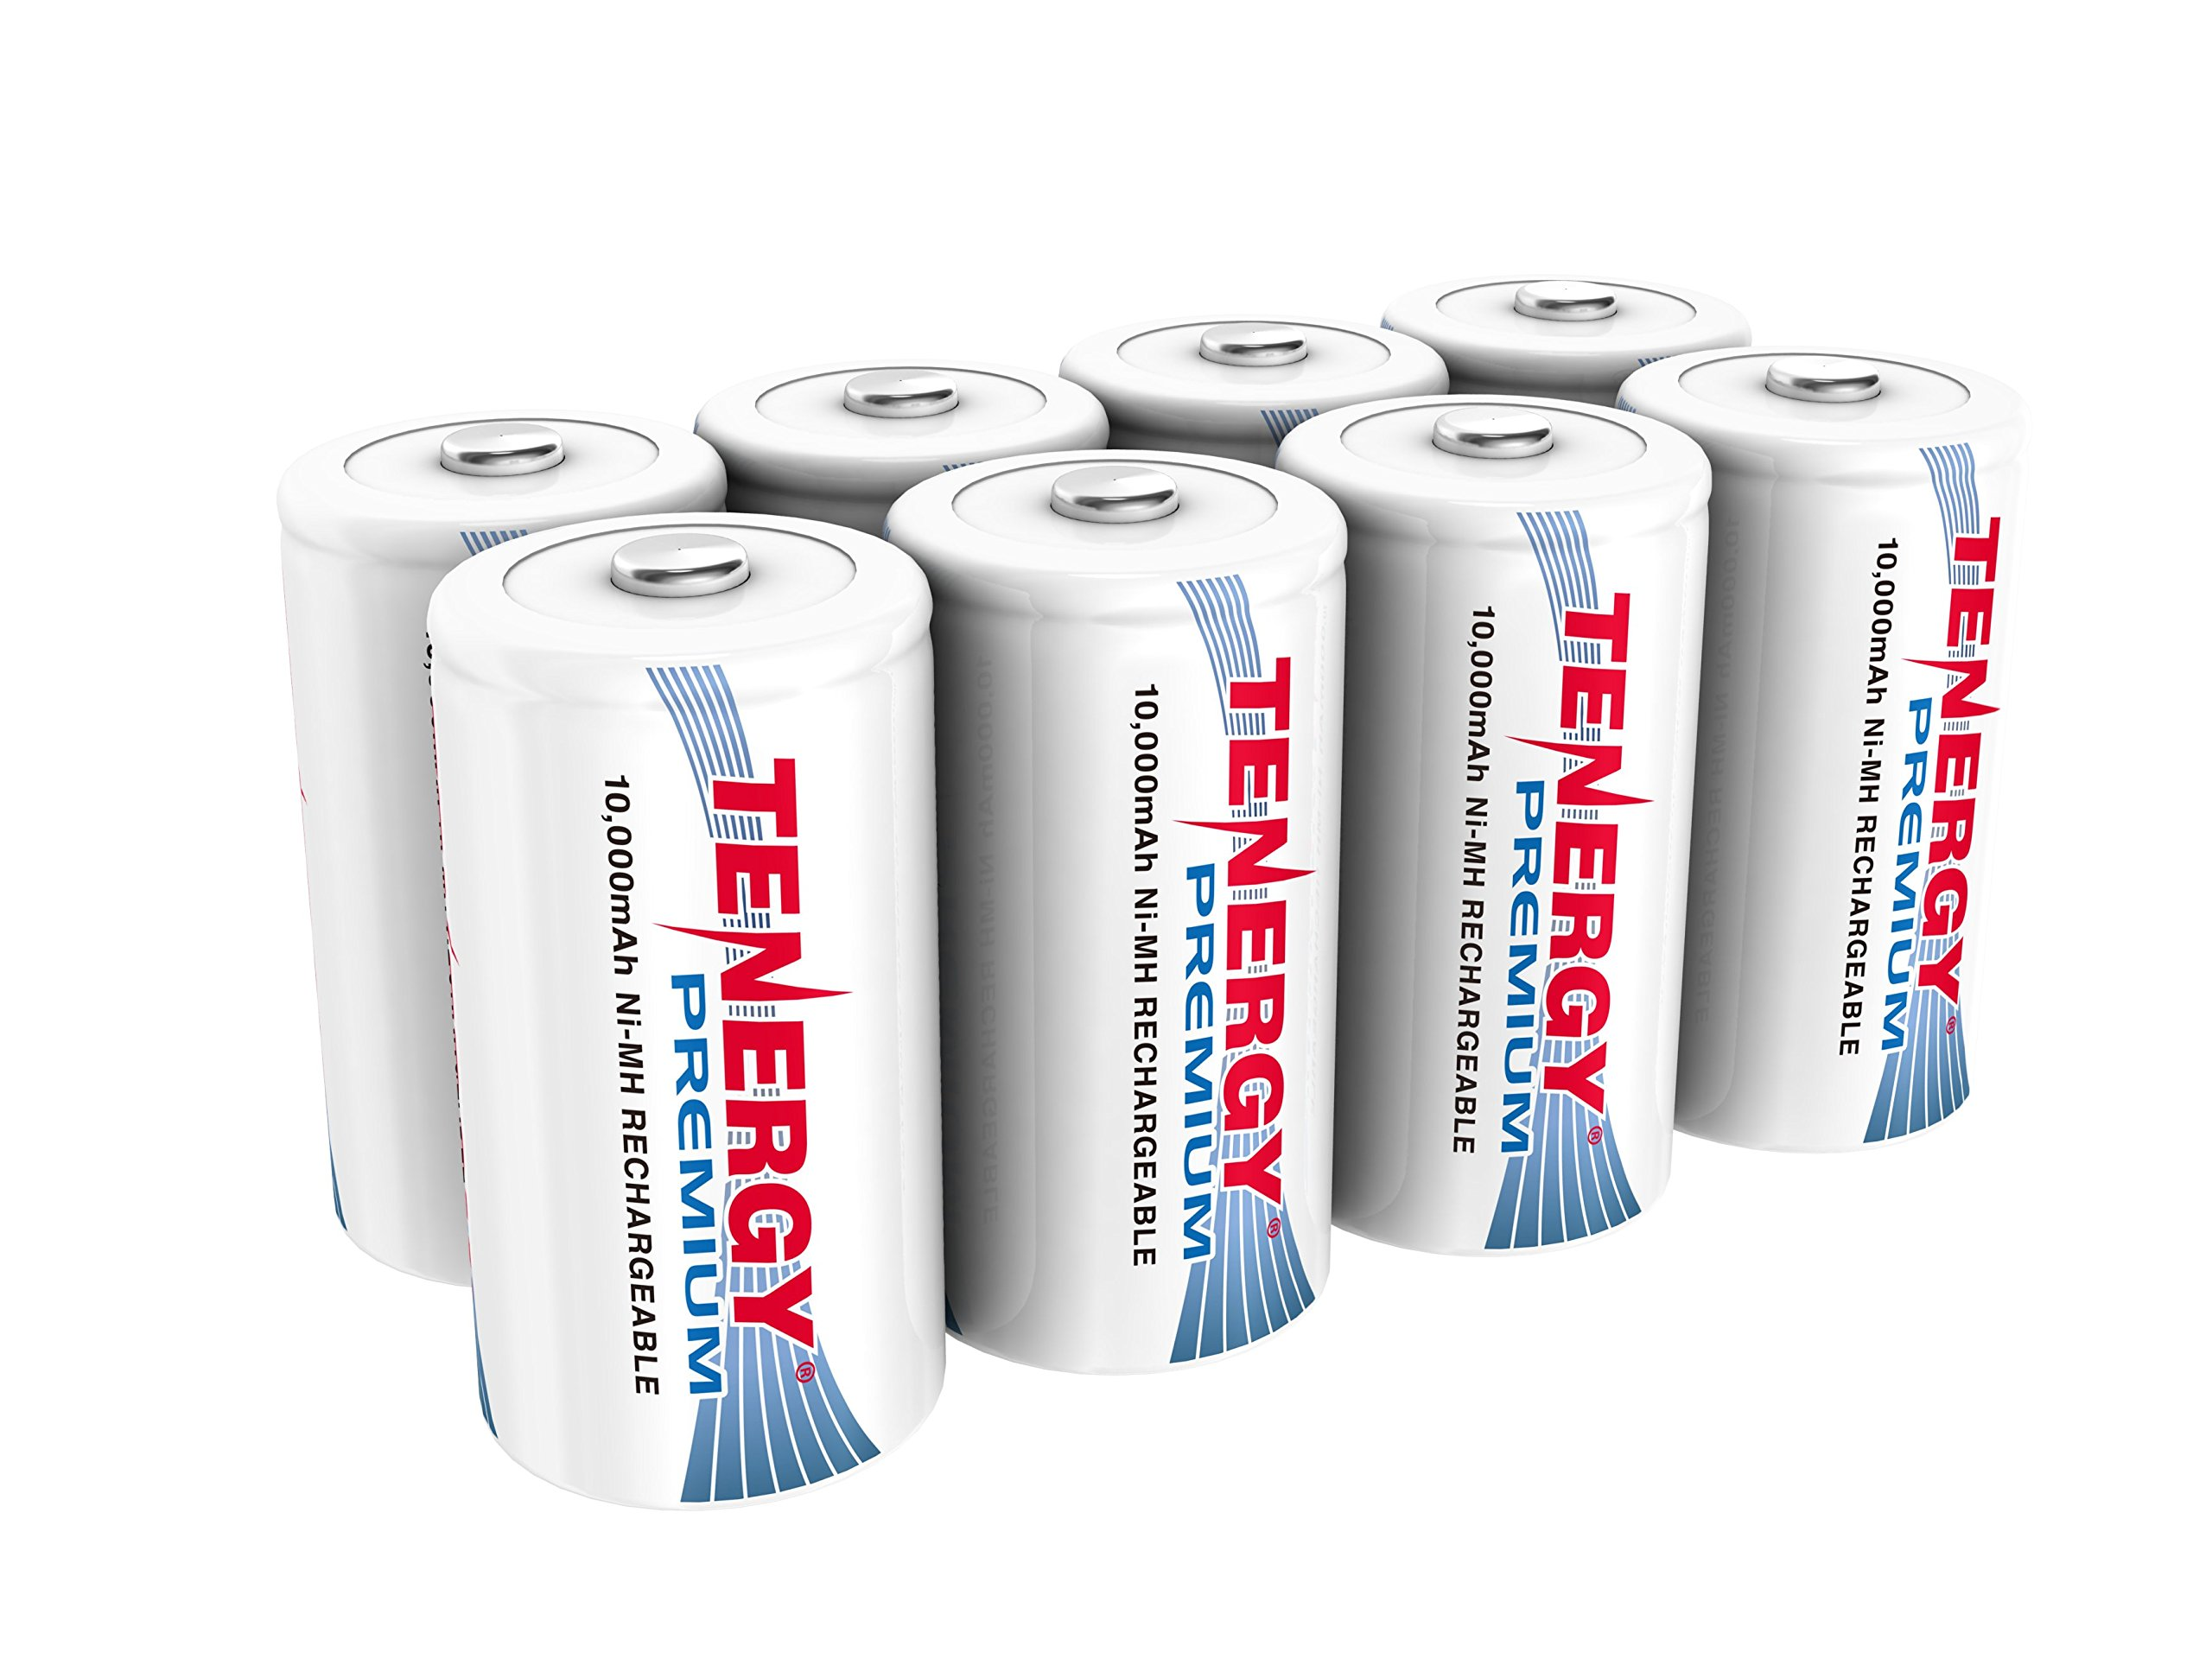 Tenergy 8 pcs of Premium D Size 10,000mAh High Capacity High Rate NiMH Rechargeable Batteries - UL Certified by Tenergy